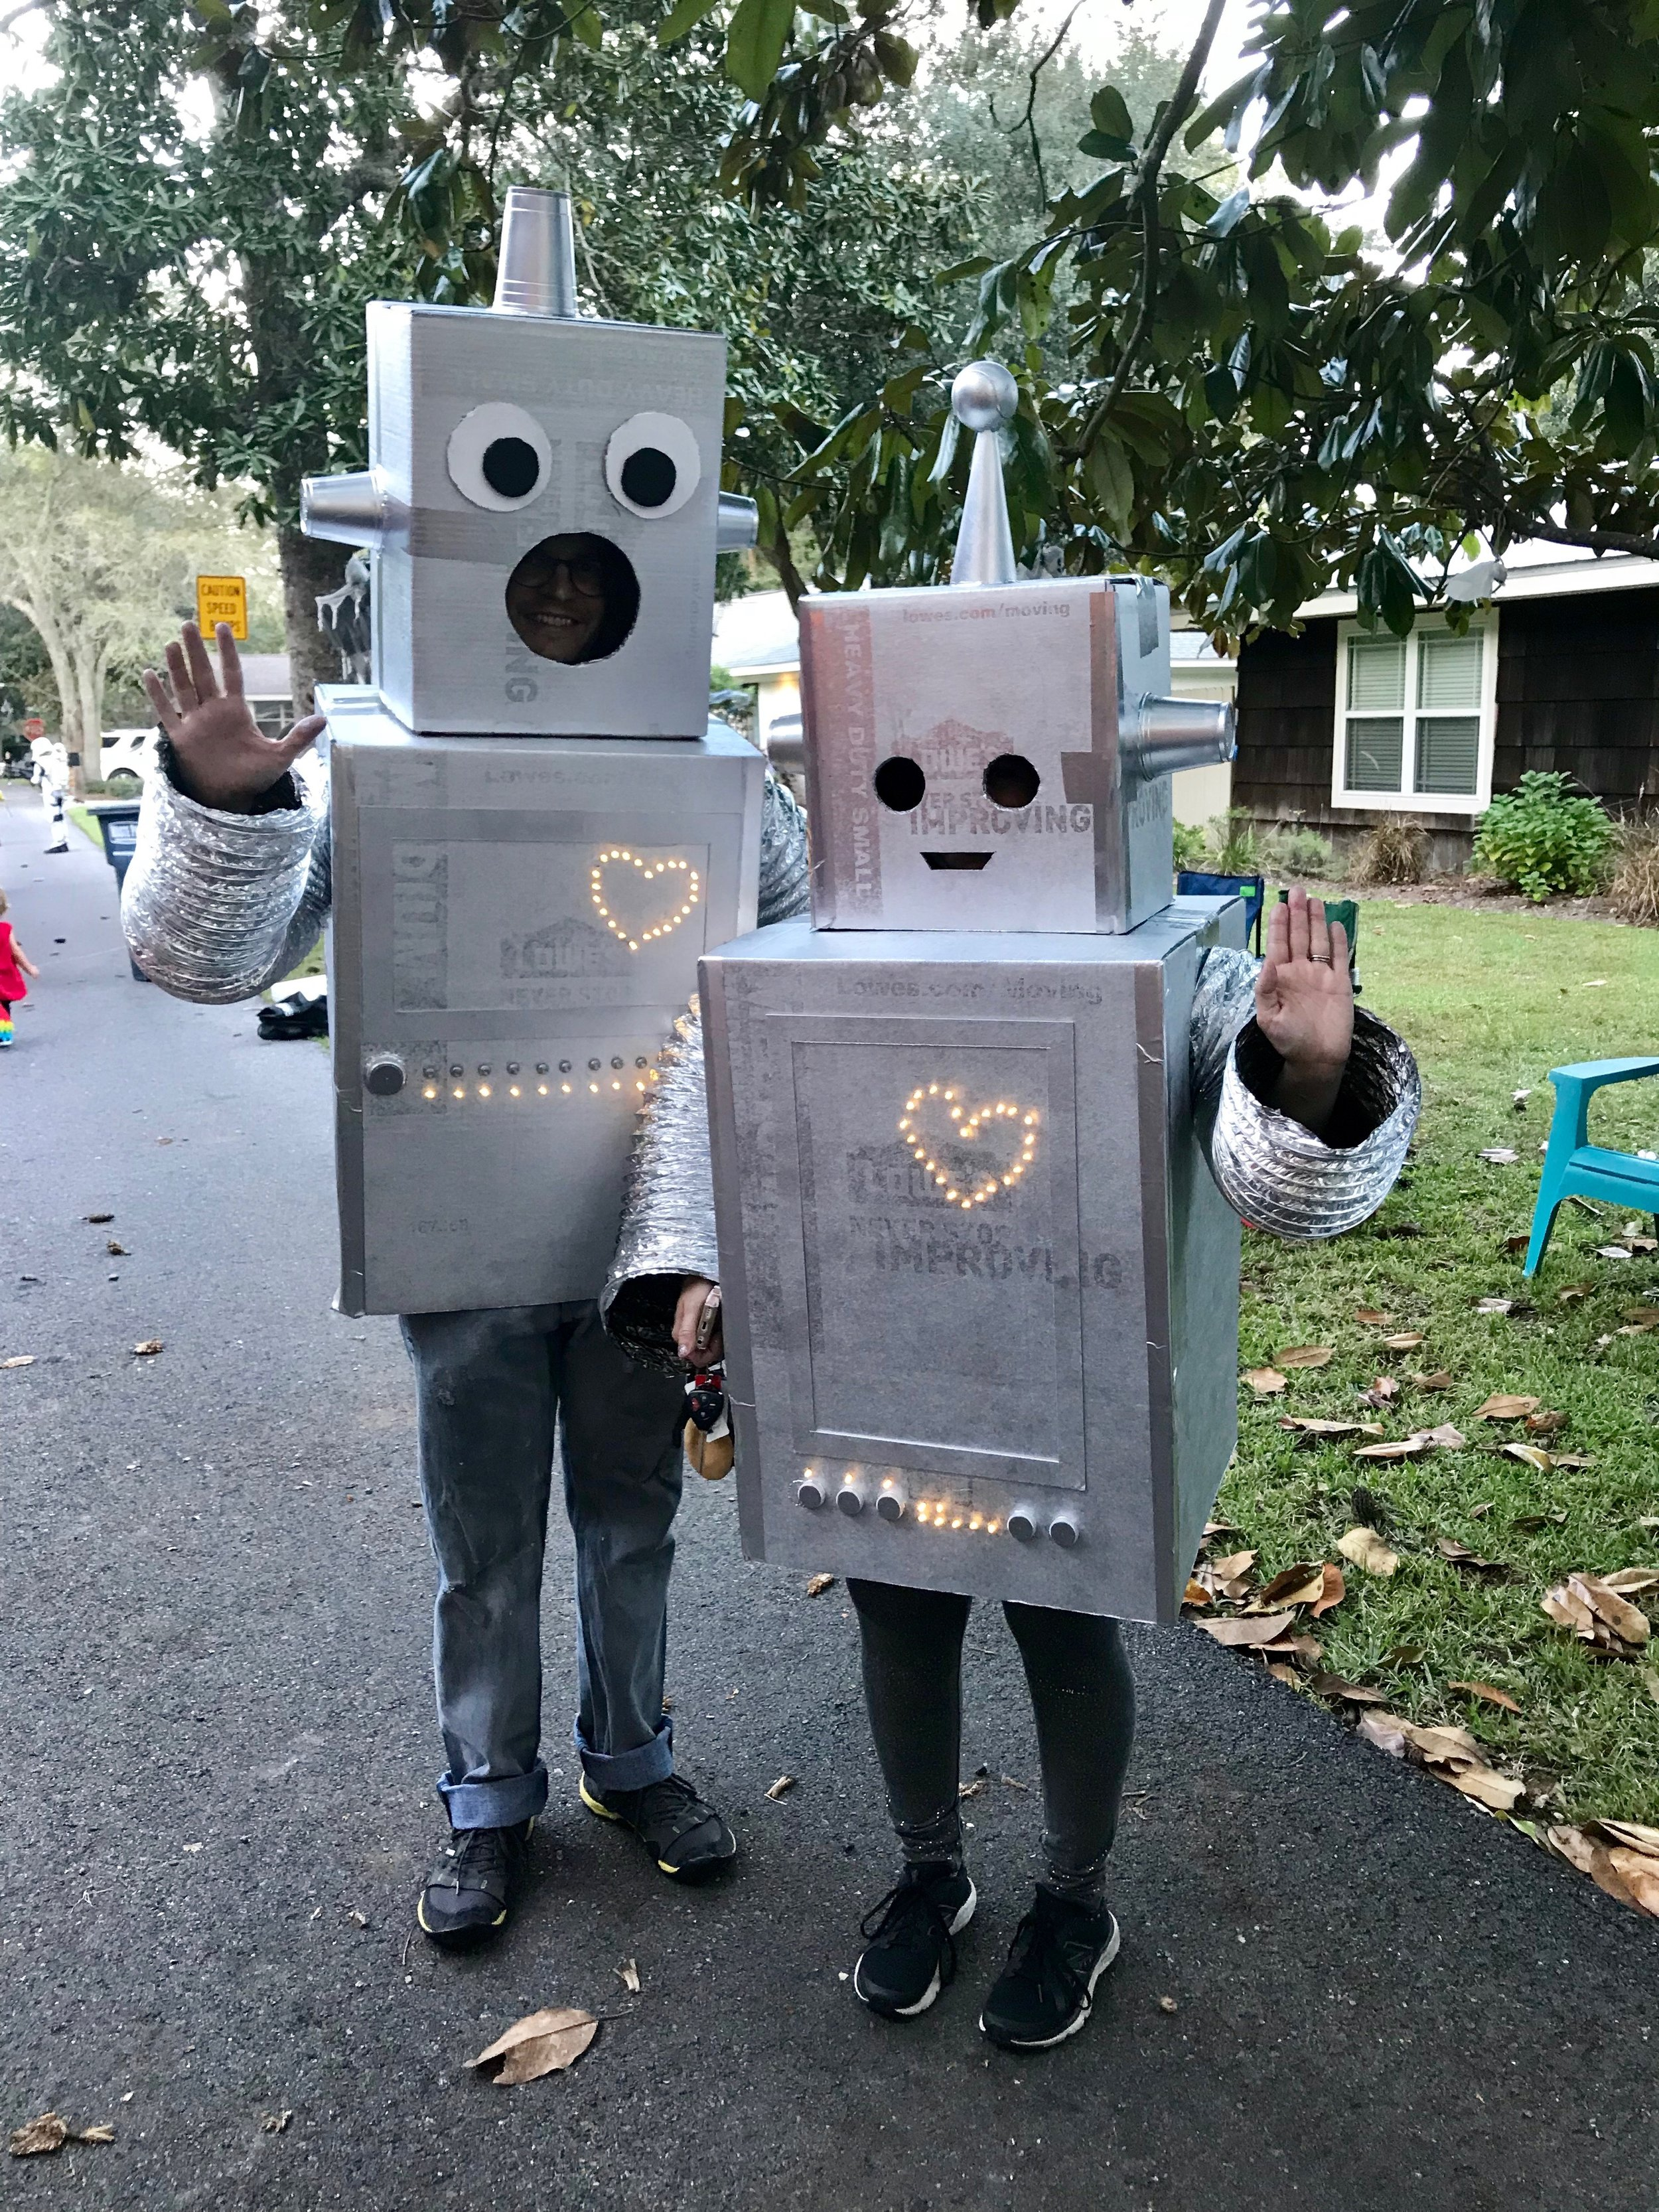 These costumes not only relate to our humor, but also our frugality. You can do some pretty amazing things with cardboard.